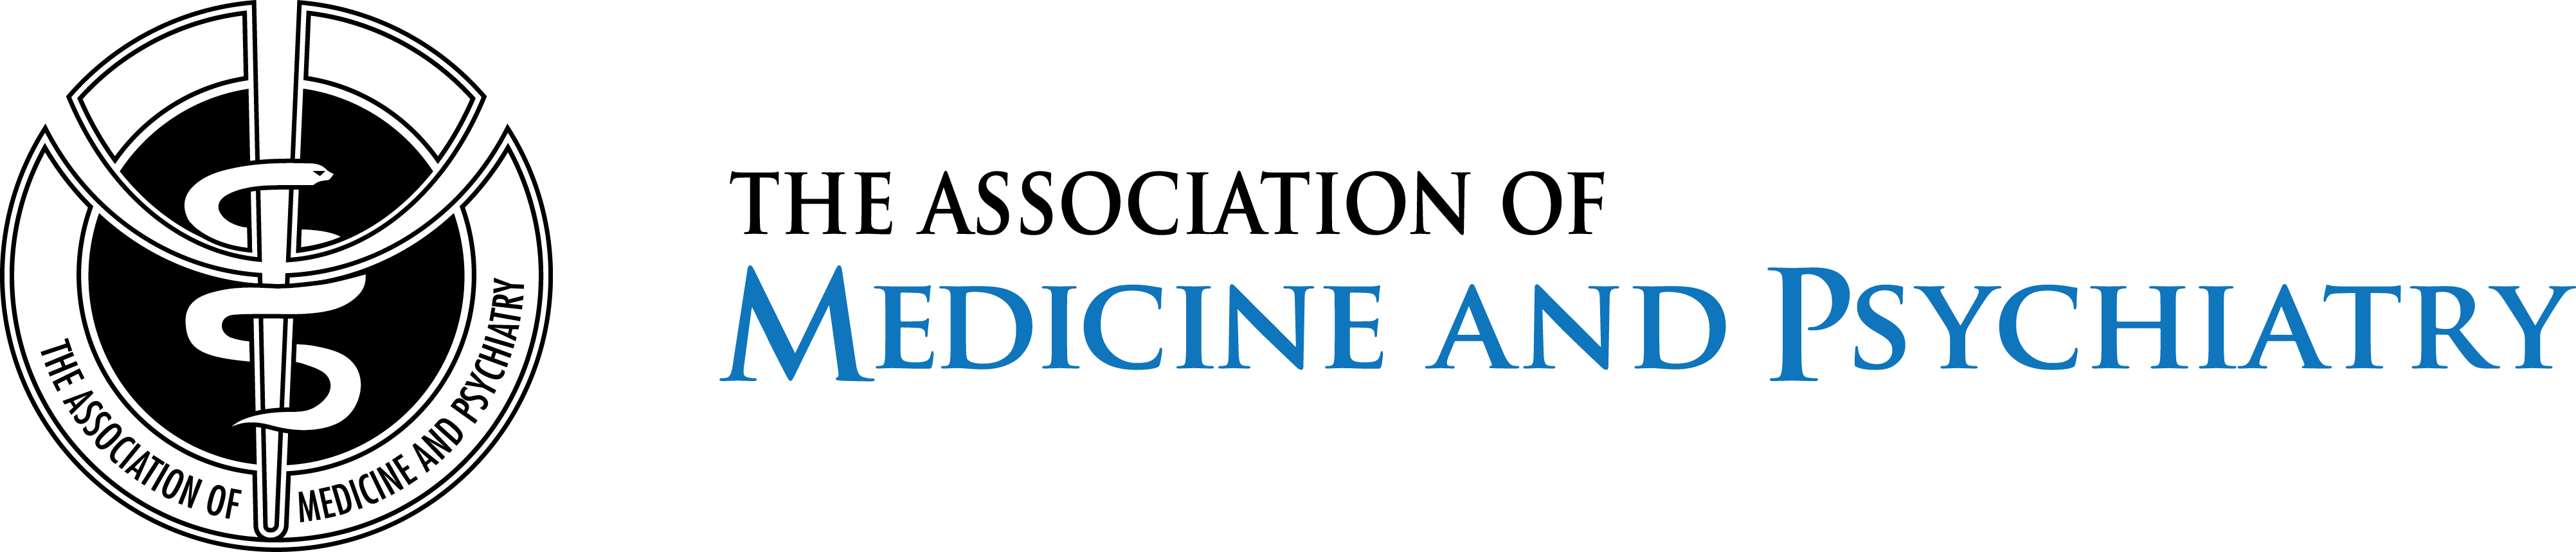 Association of Medicine and Psychiatry